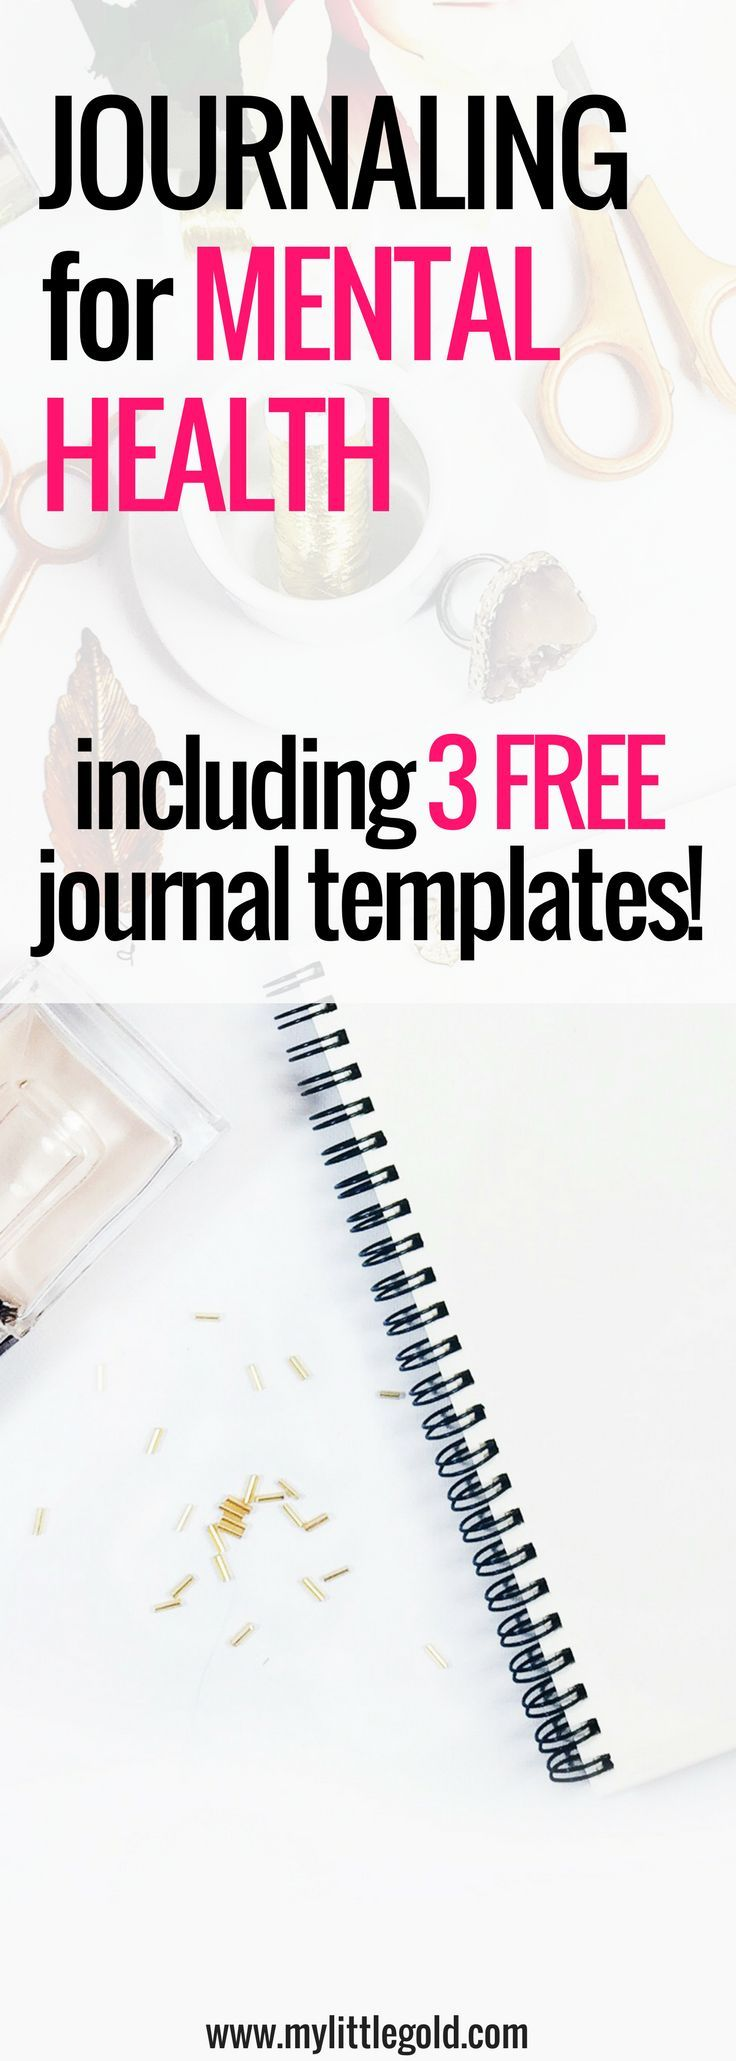 Keeping up with journaling is hard sometimes.  I enjoy doing it for my   own mental health and sanity - I find it so therapeutic!  Positive   journal prompts and beautiful templates have helped peak my interest for   this.  I've even tried to bullet journal!